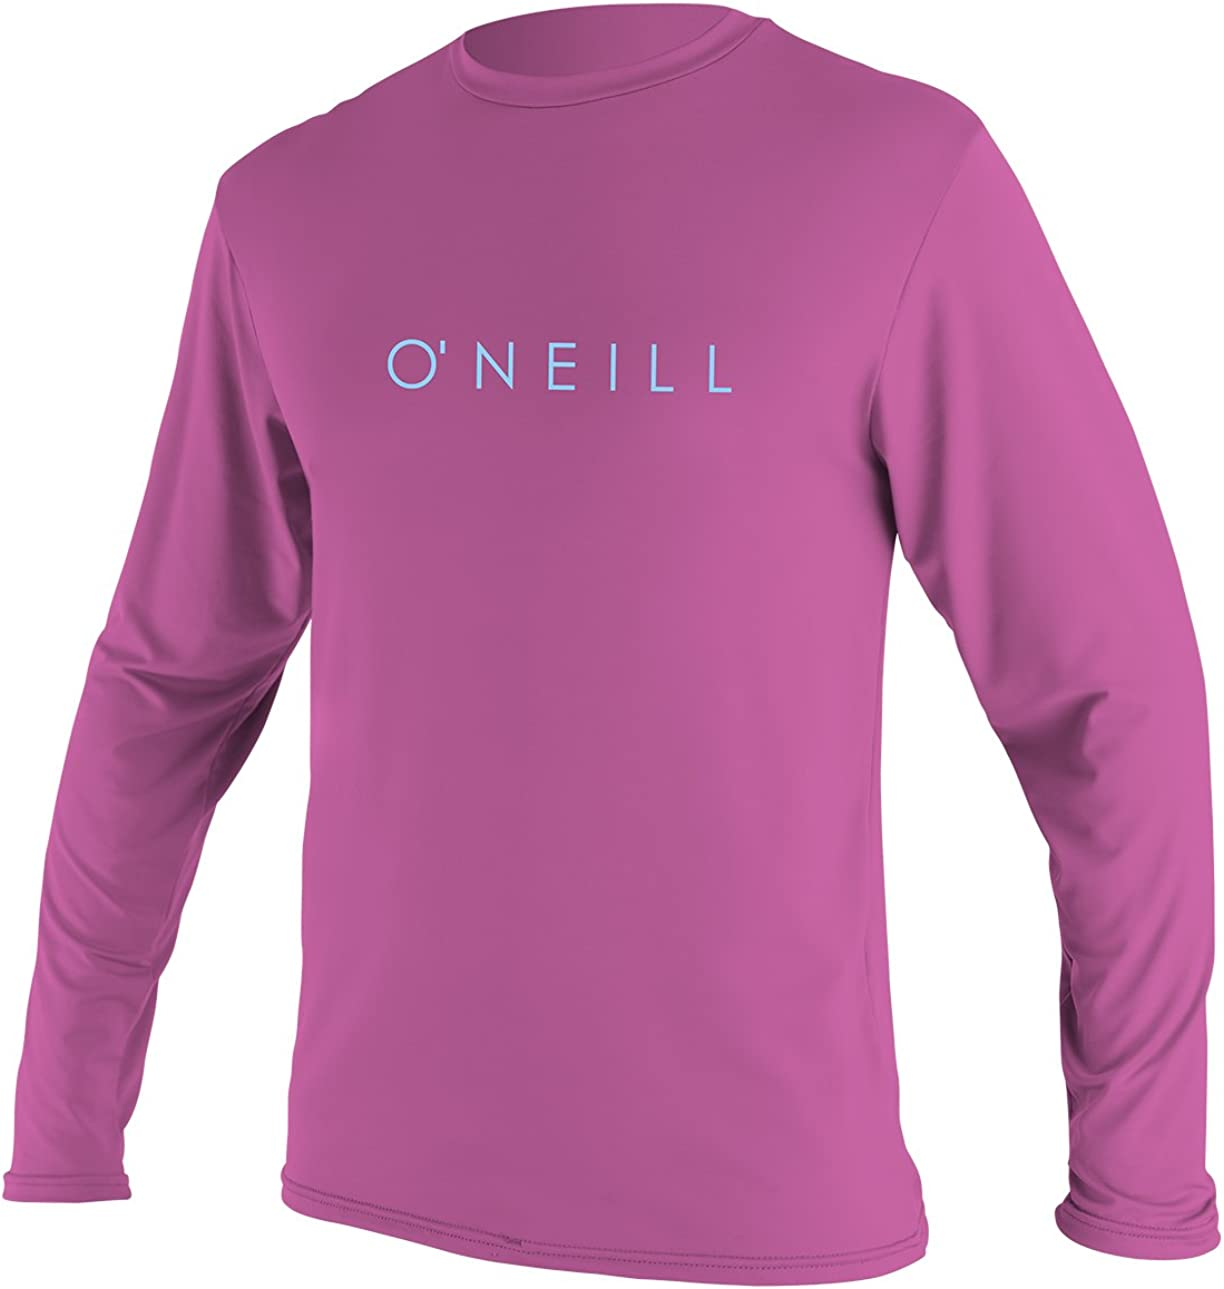 O'Neill Youth Basic Skins Upf 30 + Long Sleeve Sun Shirt